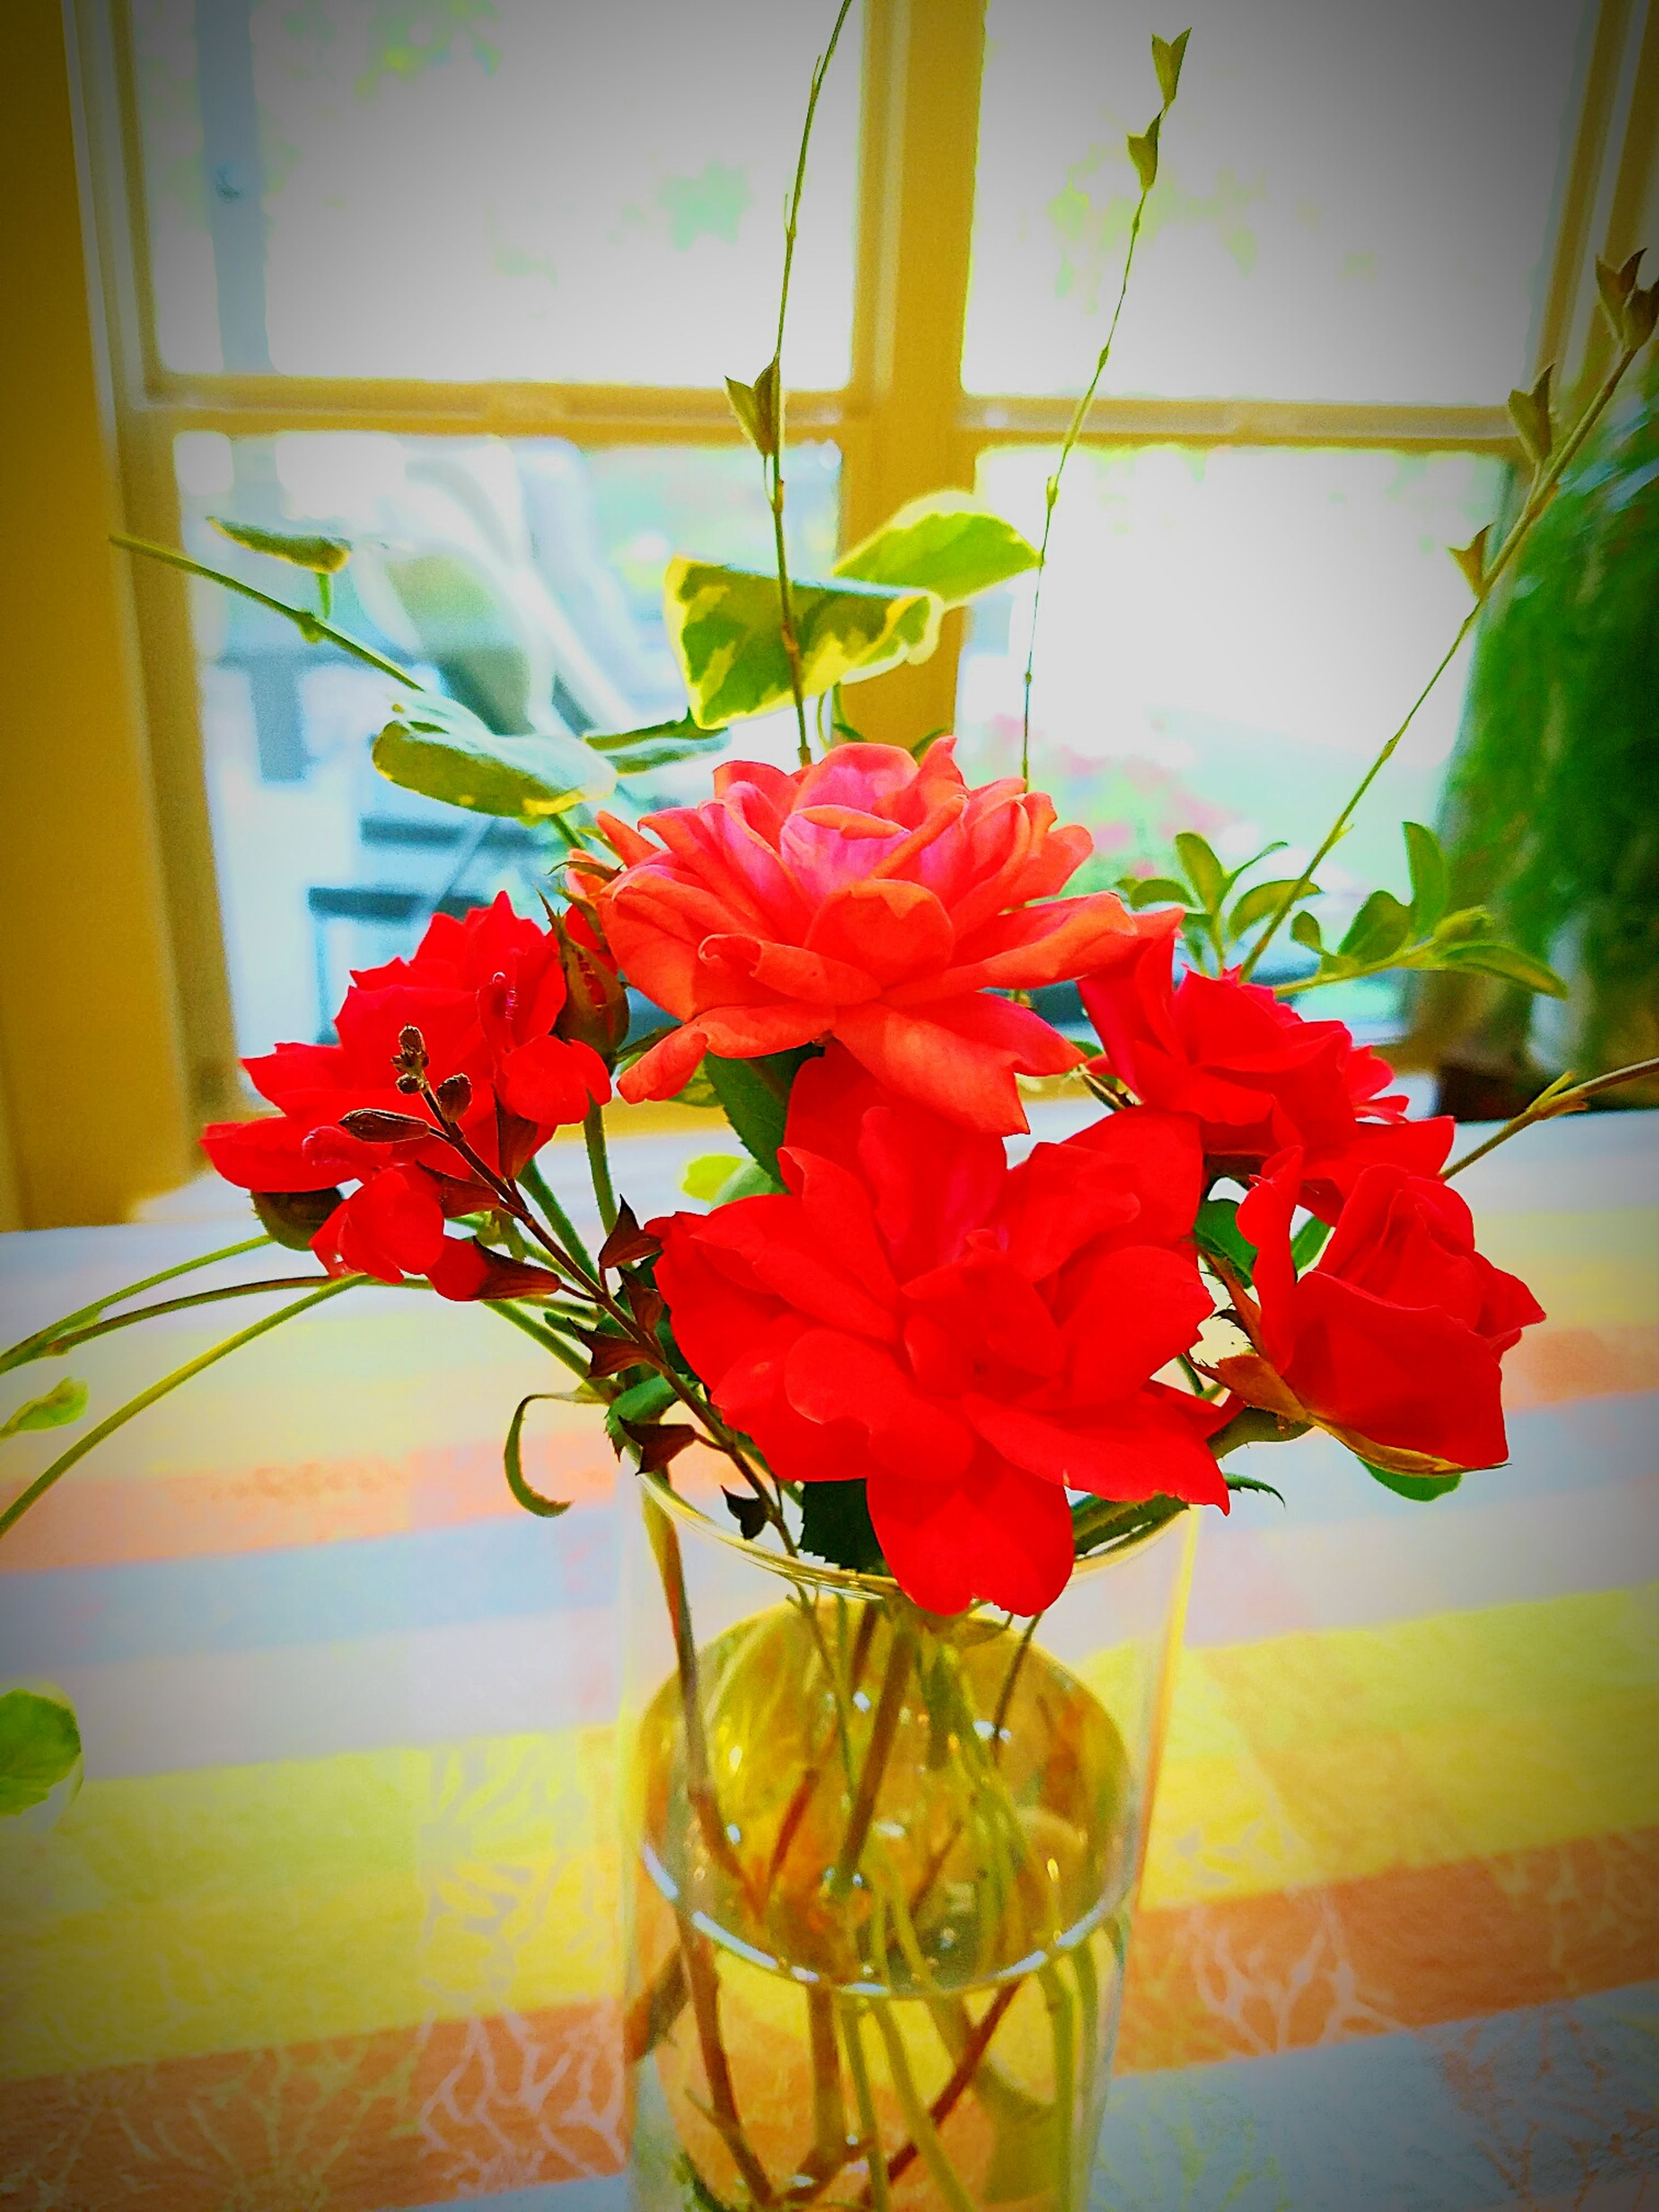 flower, indoors, freshness, fragility, vase, petal, glass - material, red, table, plant, growth, flower head, potted plant, close-up, leaf, beauty in nature, home interior, decoration, nature, transparent